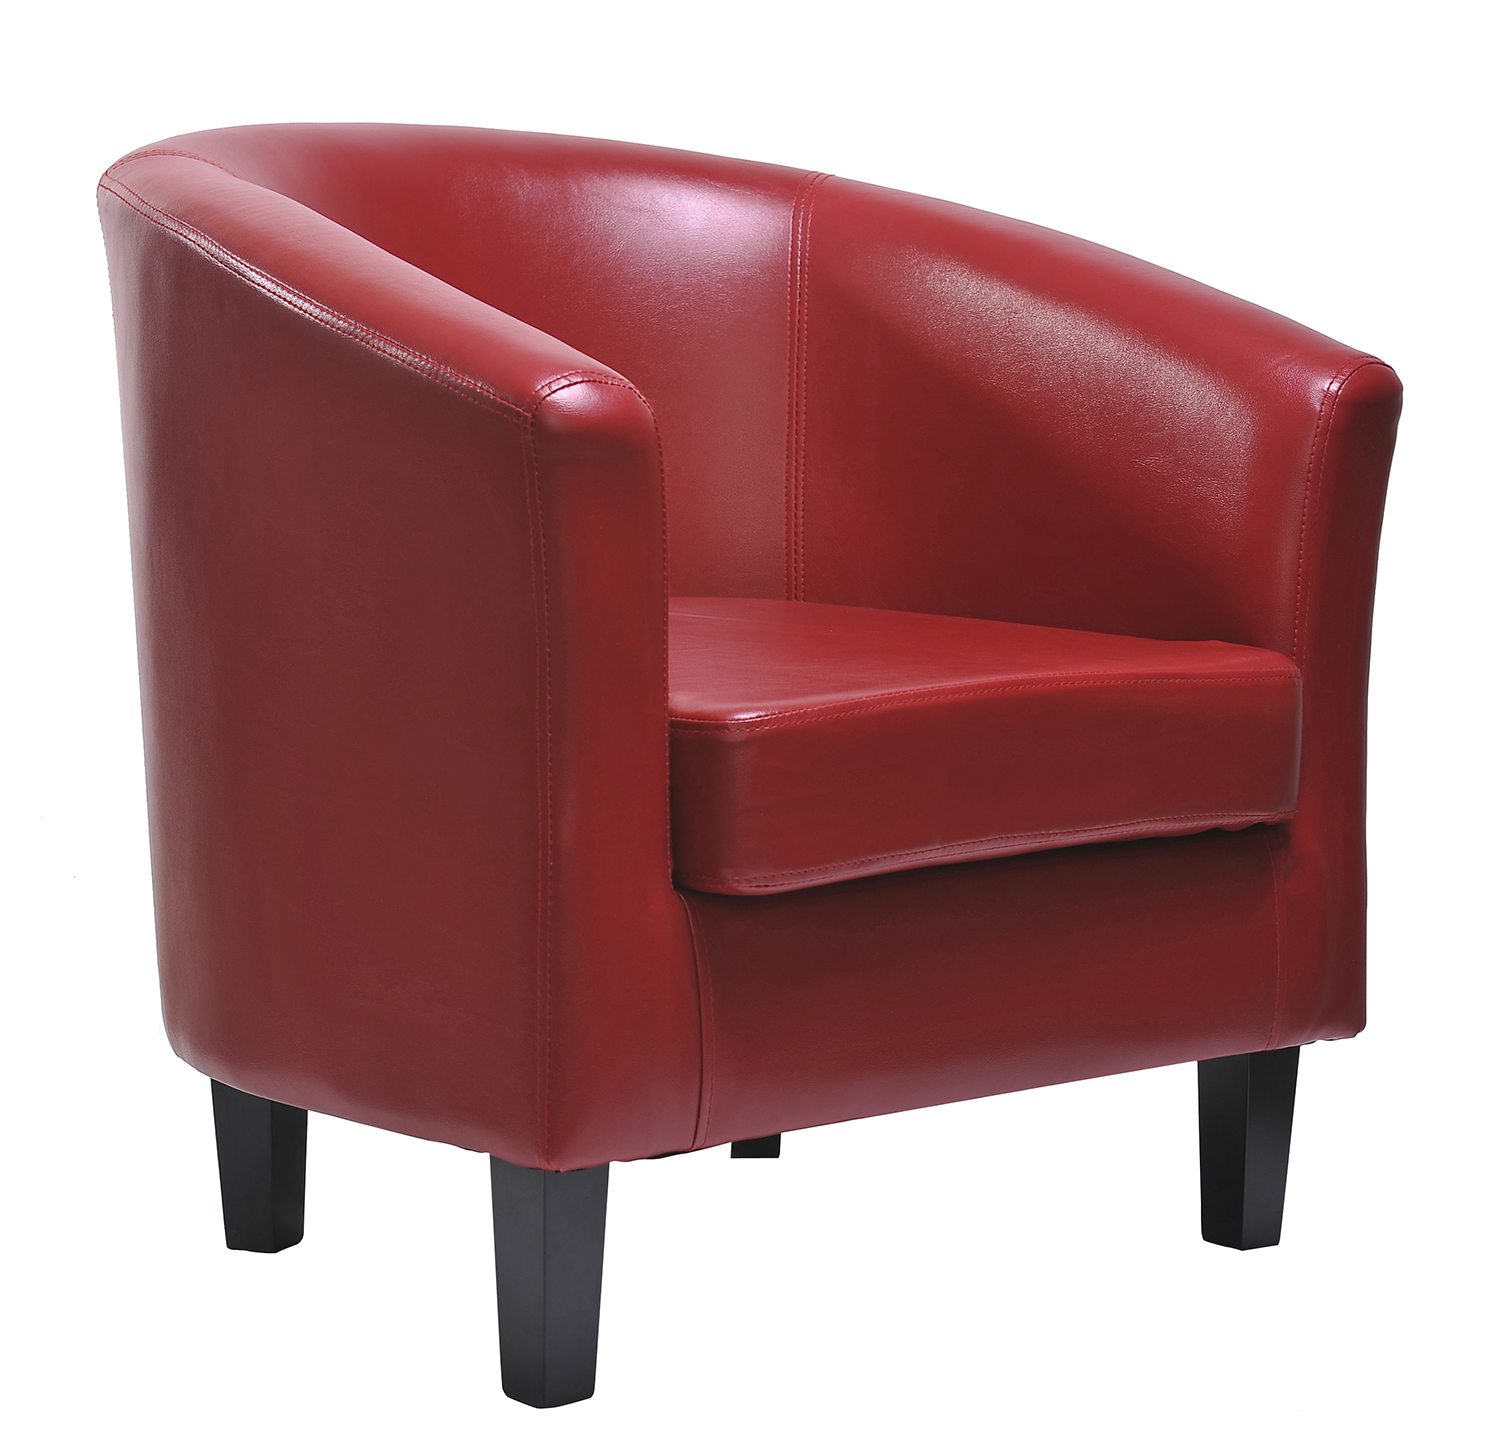 Ted Faux Leather Tub Chair Chair (red)